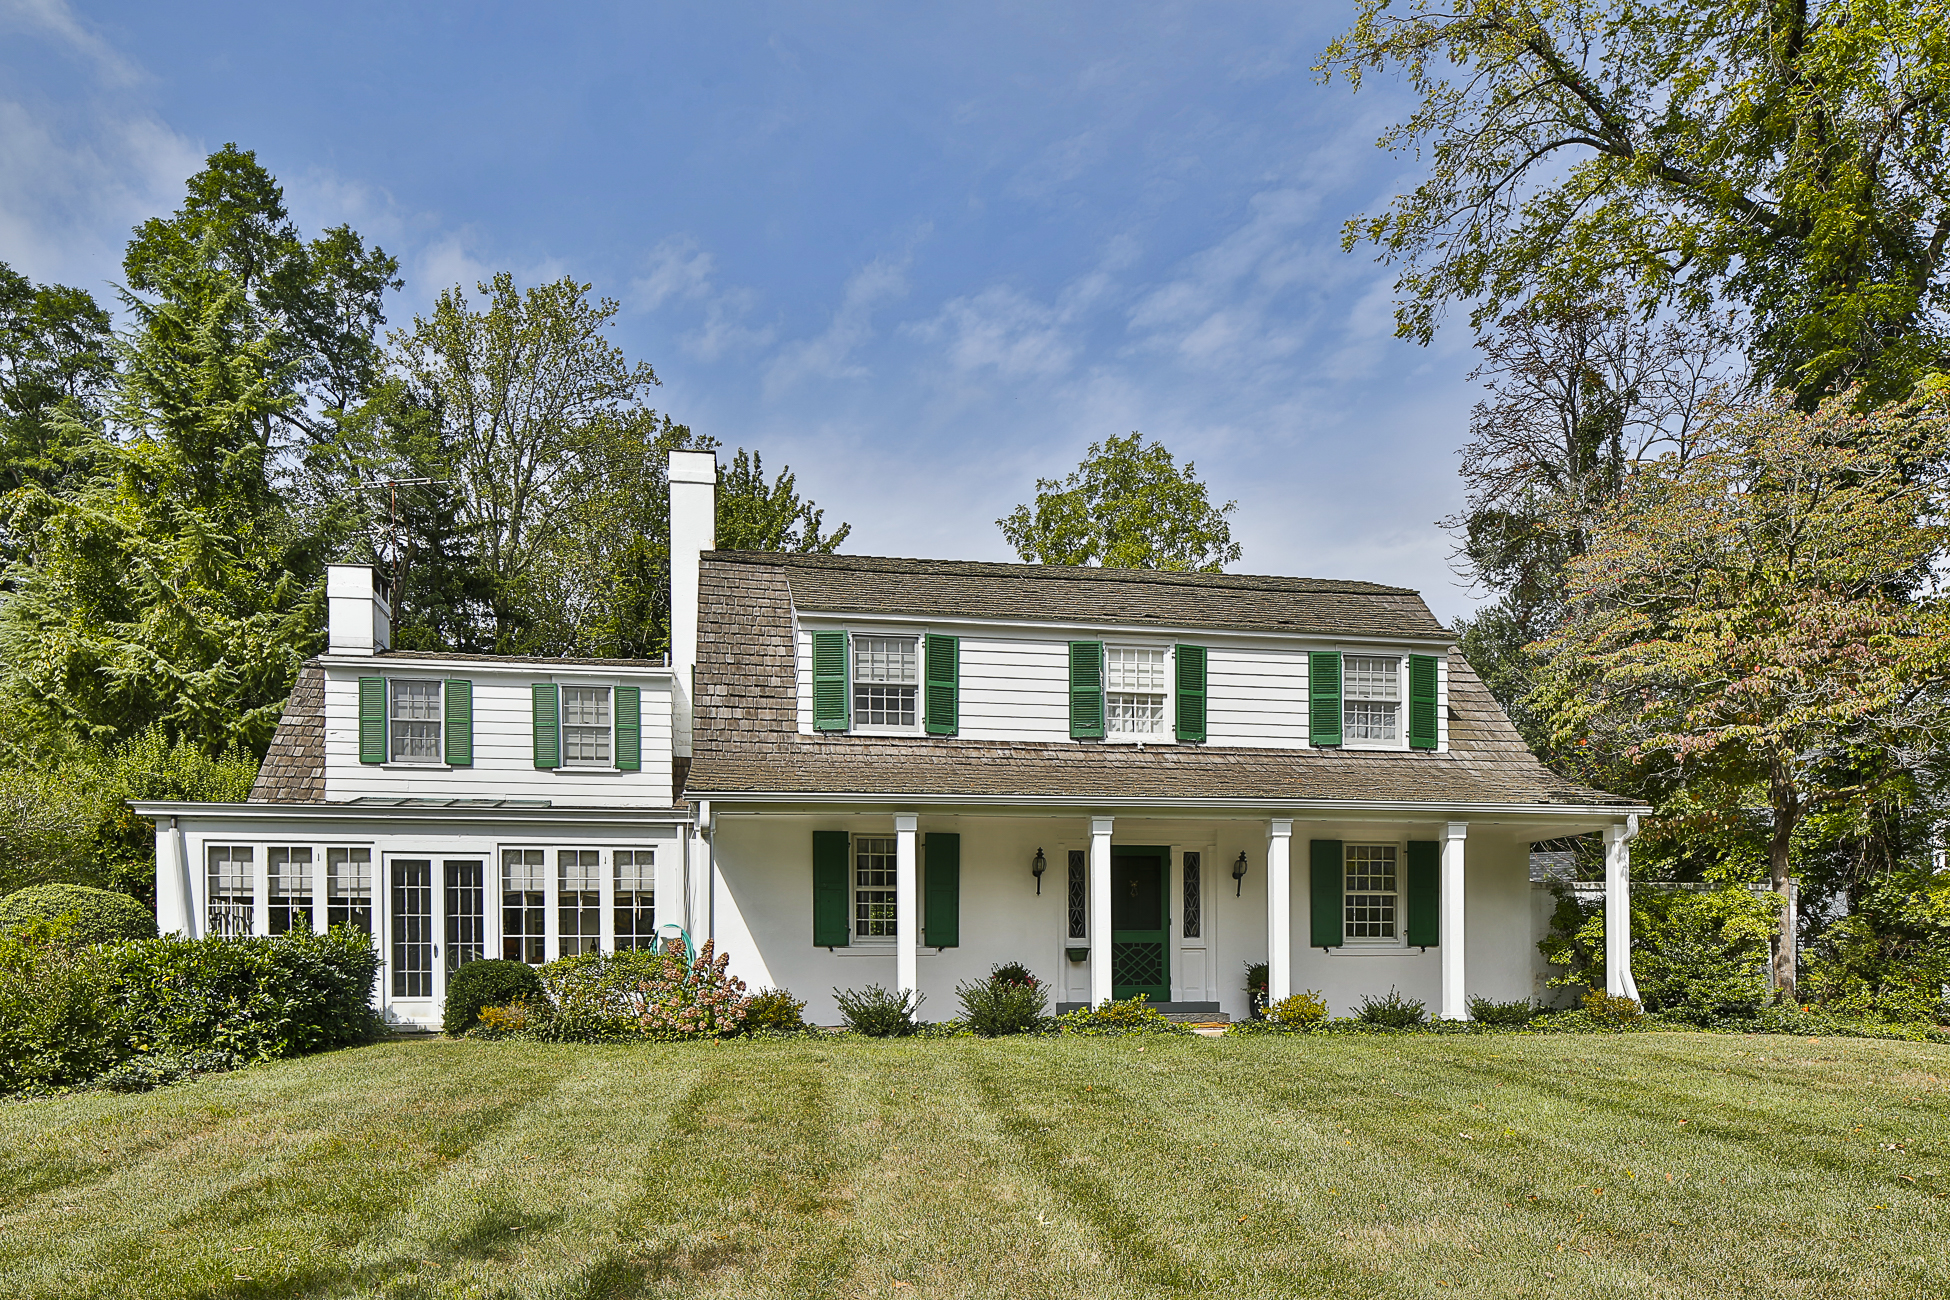 Property For Sale at Charming Dutch Colonial in Institute Neighborhood